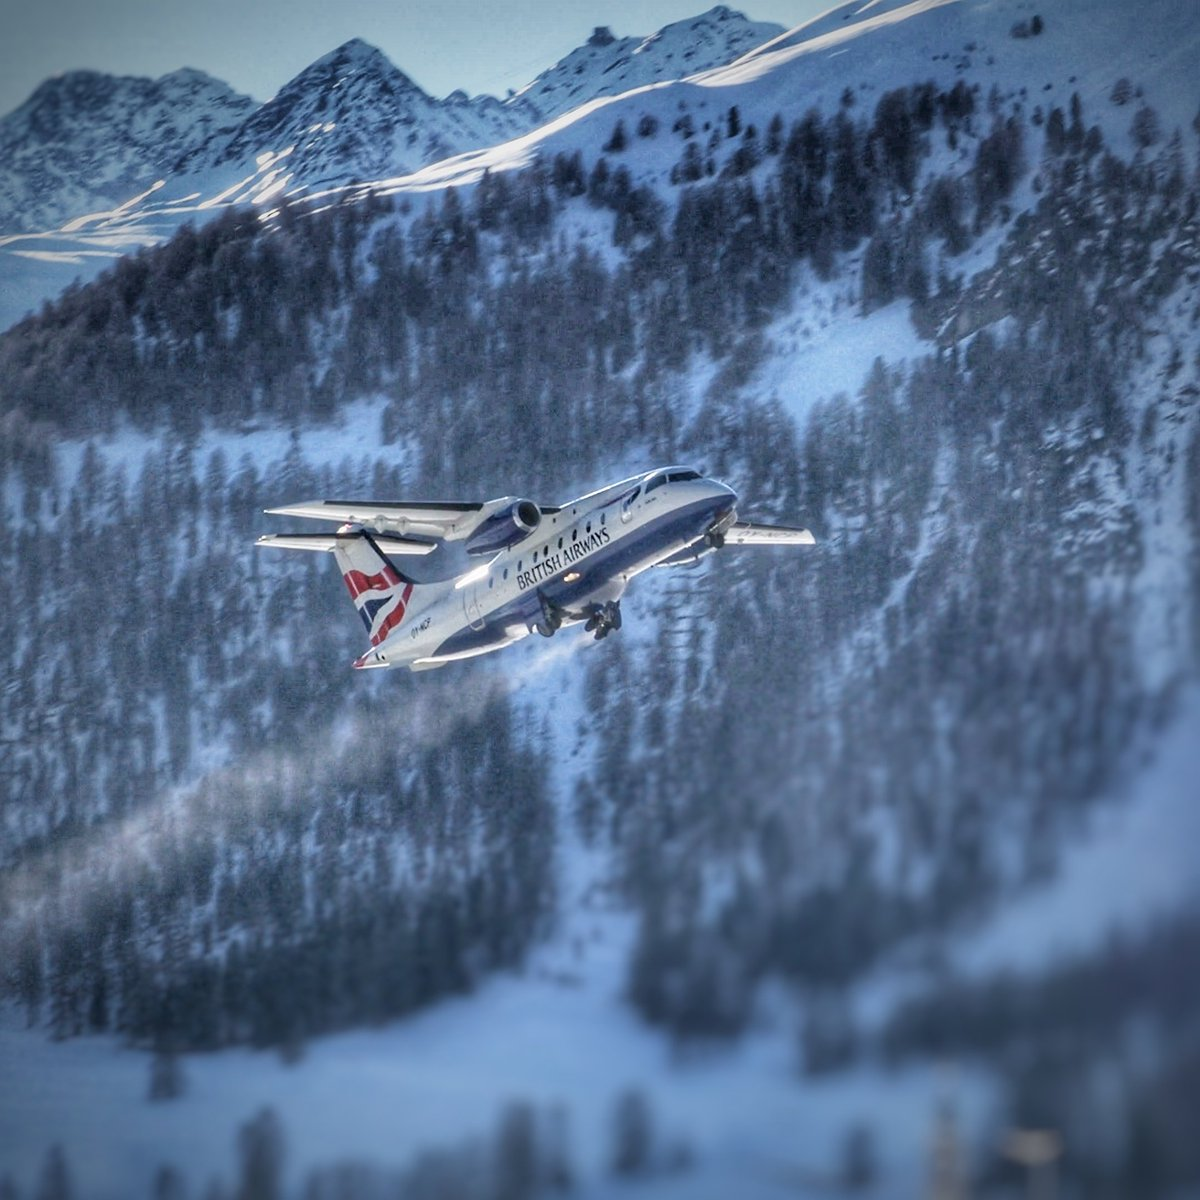 Busy Business Jet Action Samedan Airport 22.02.2020 Valley Landing and Takeoff  Full Video OUT NOW on YOUTUBE by Crosswind  #OYNCP #Dornier #do328 #BritishAirways #SunAir #valleytakeoff #privatejet #businessjet #planespotting #samedanaiport #EngadinAirport #stmoritz #aviation https://t.co/V2uNgcOPCE